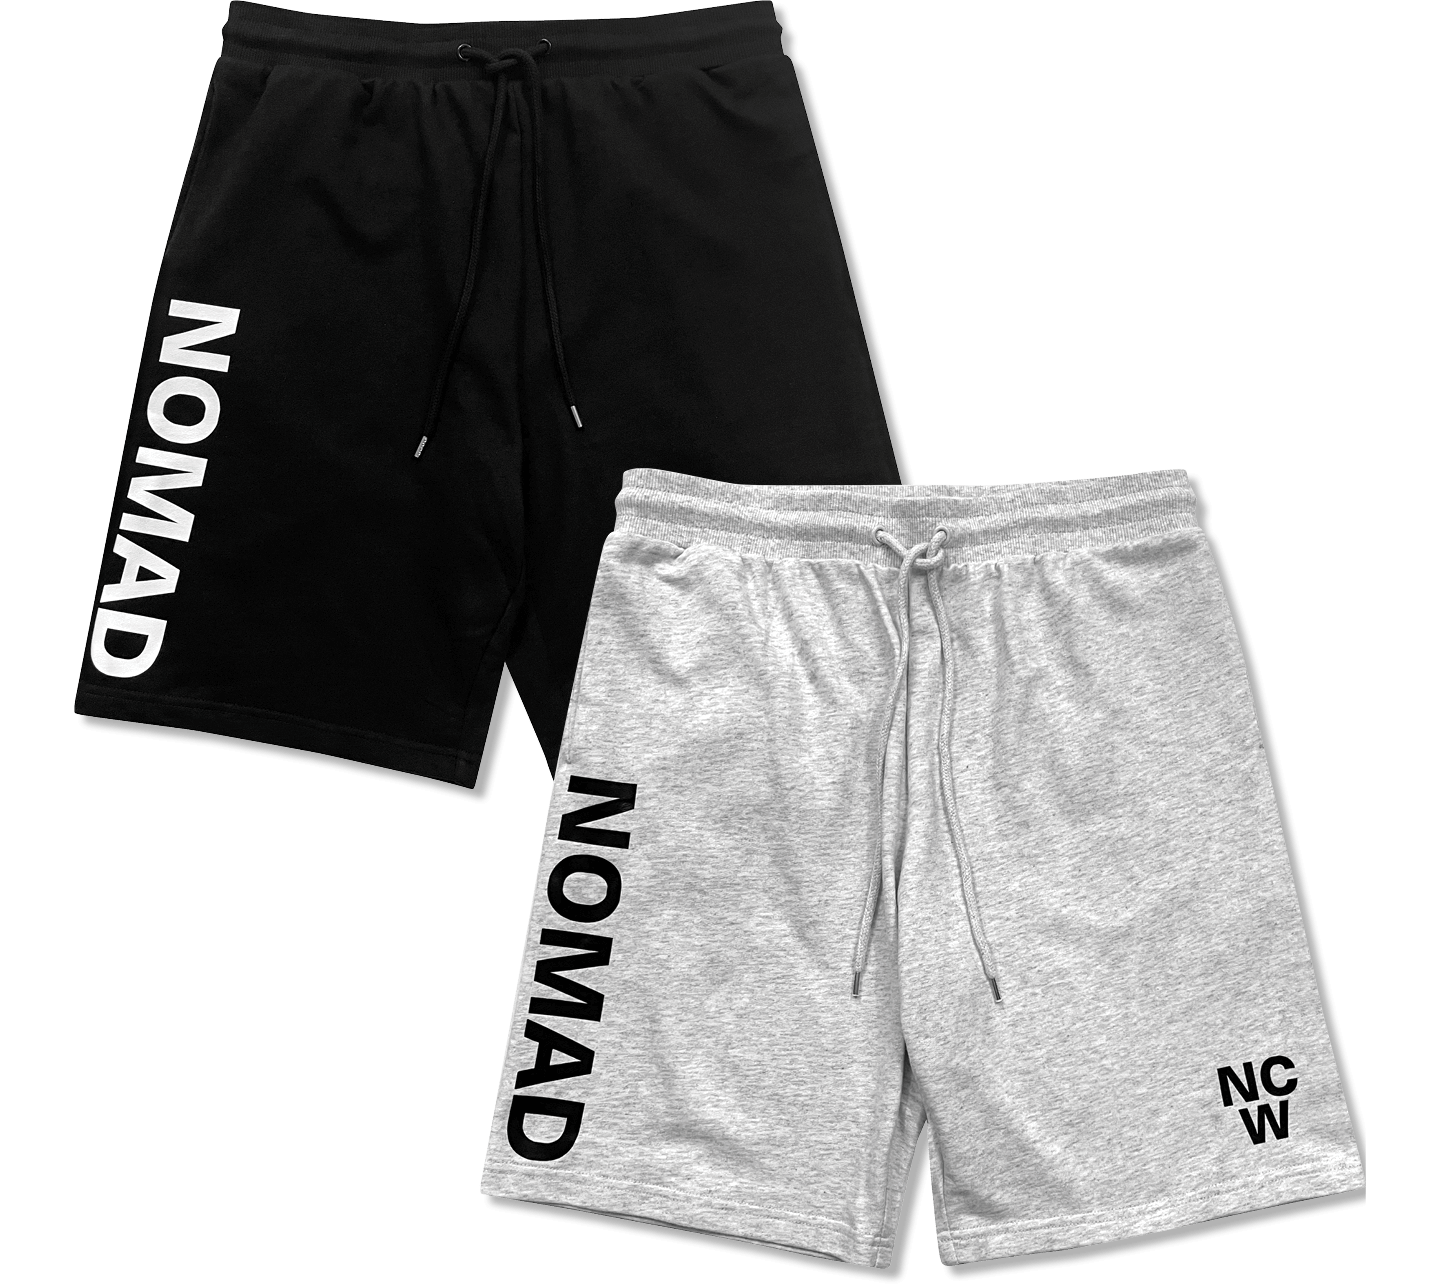 The Nomad Essential Shorts